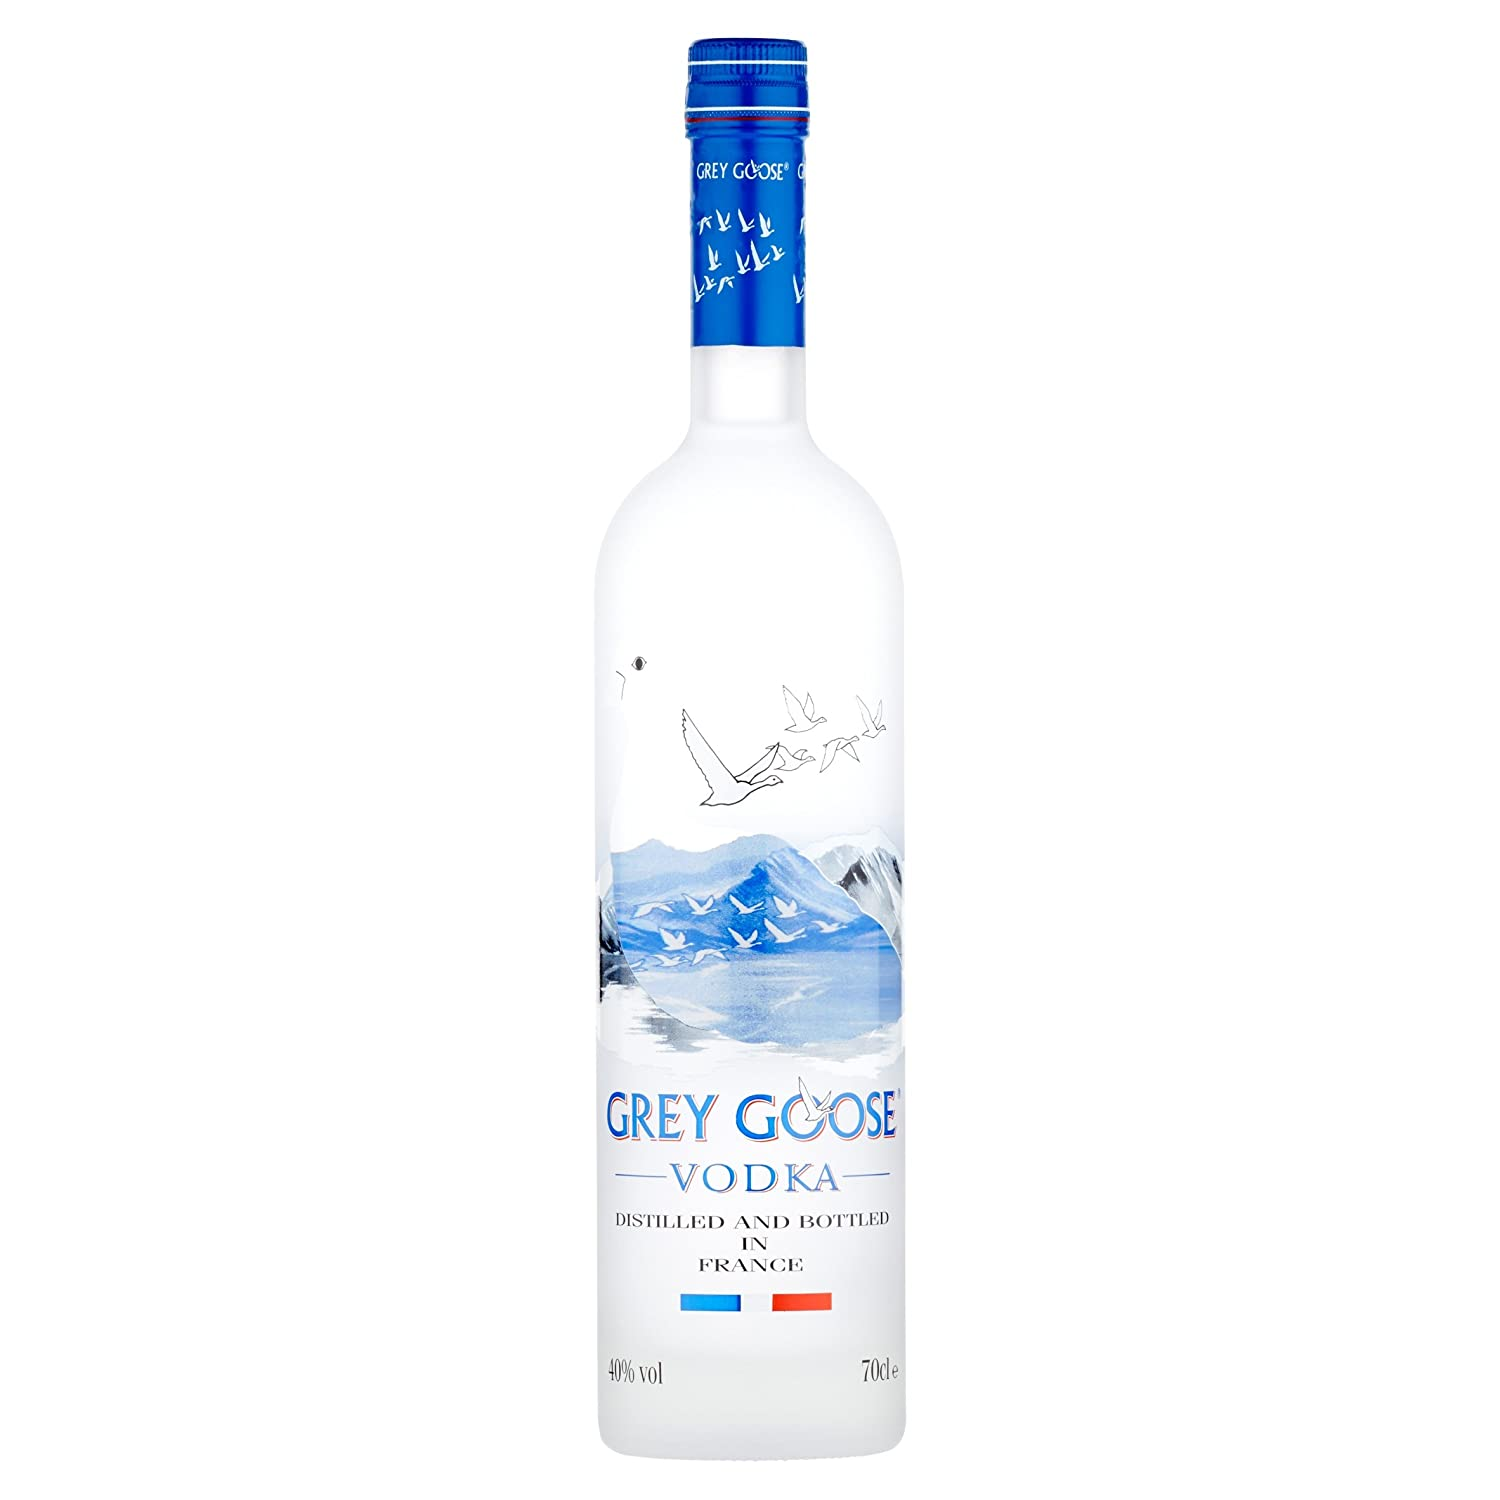 French vodka Gray Gus: characteristics, reviews 88